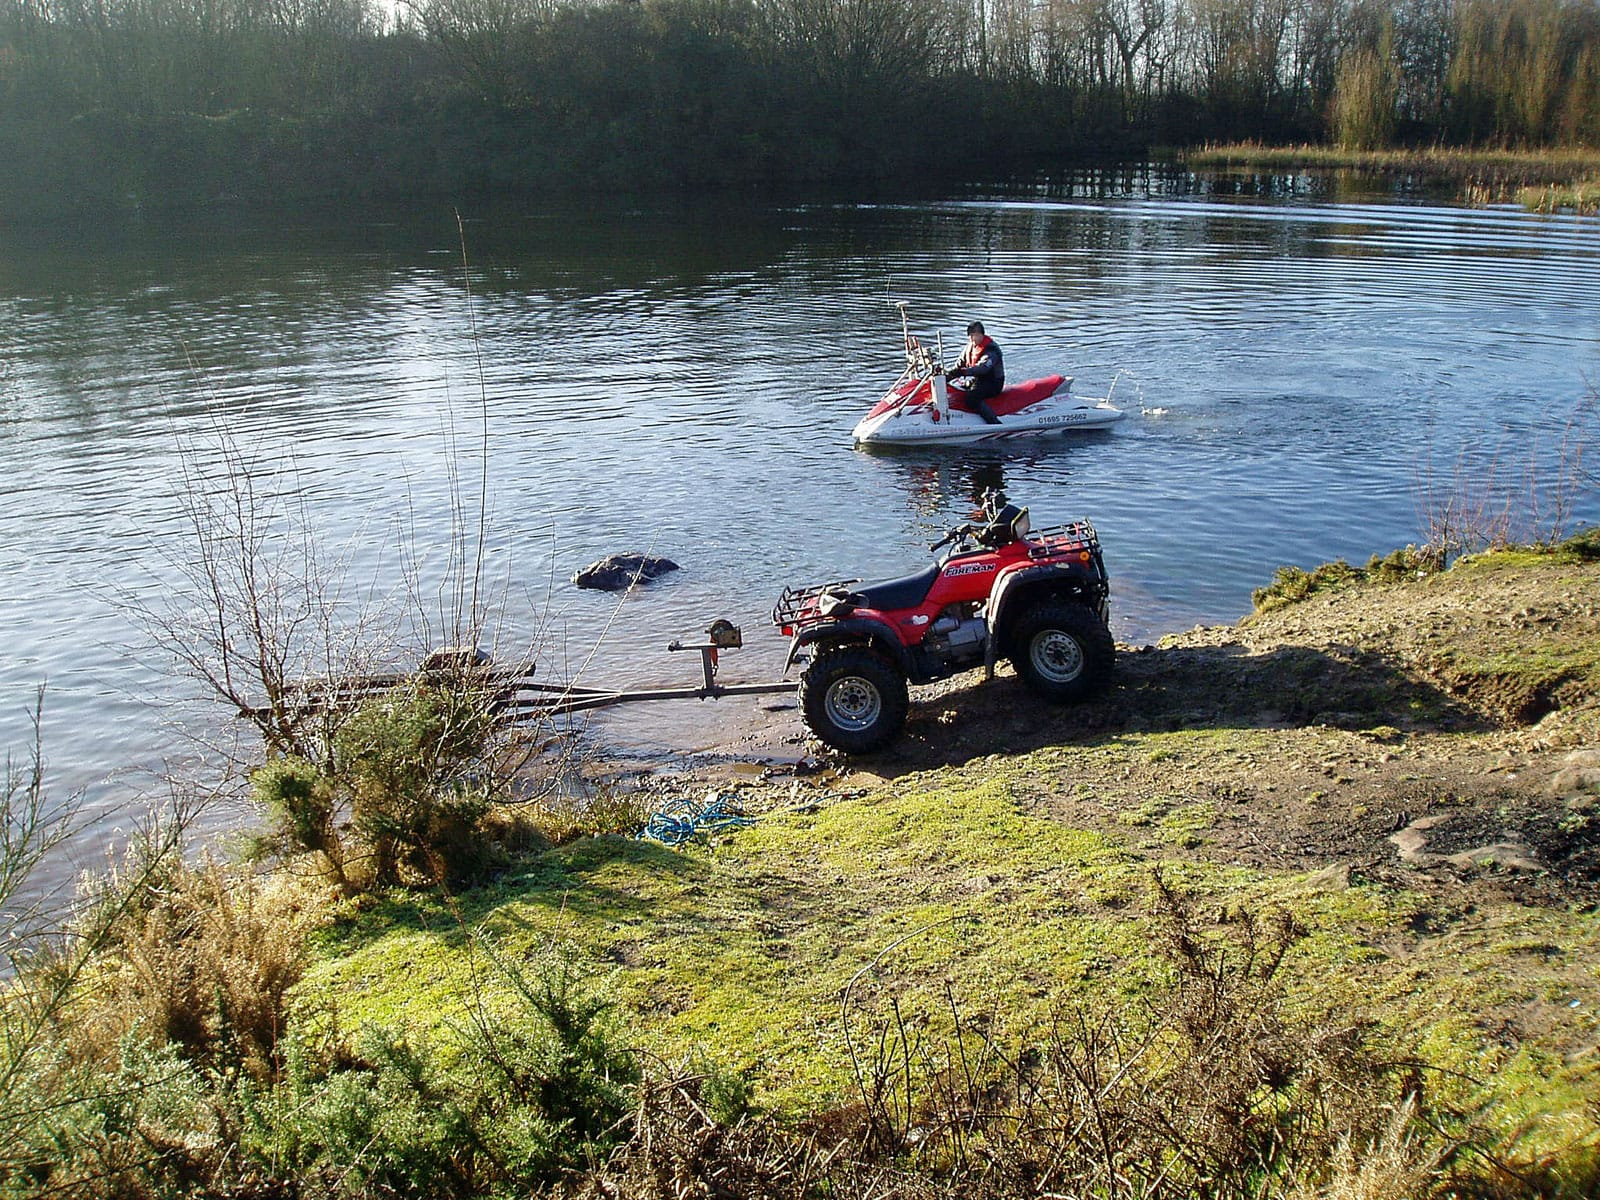 Surveying a lake on a Jet Ski